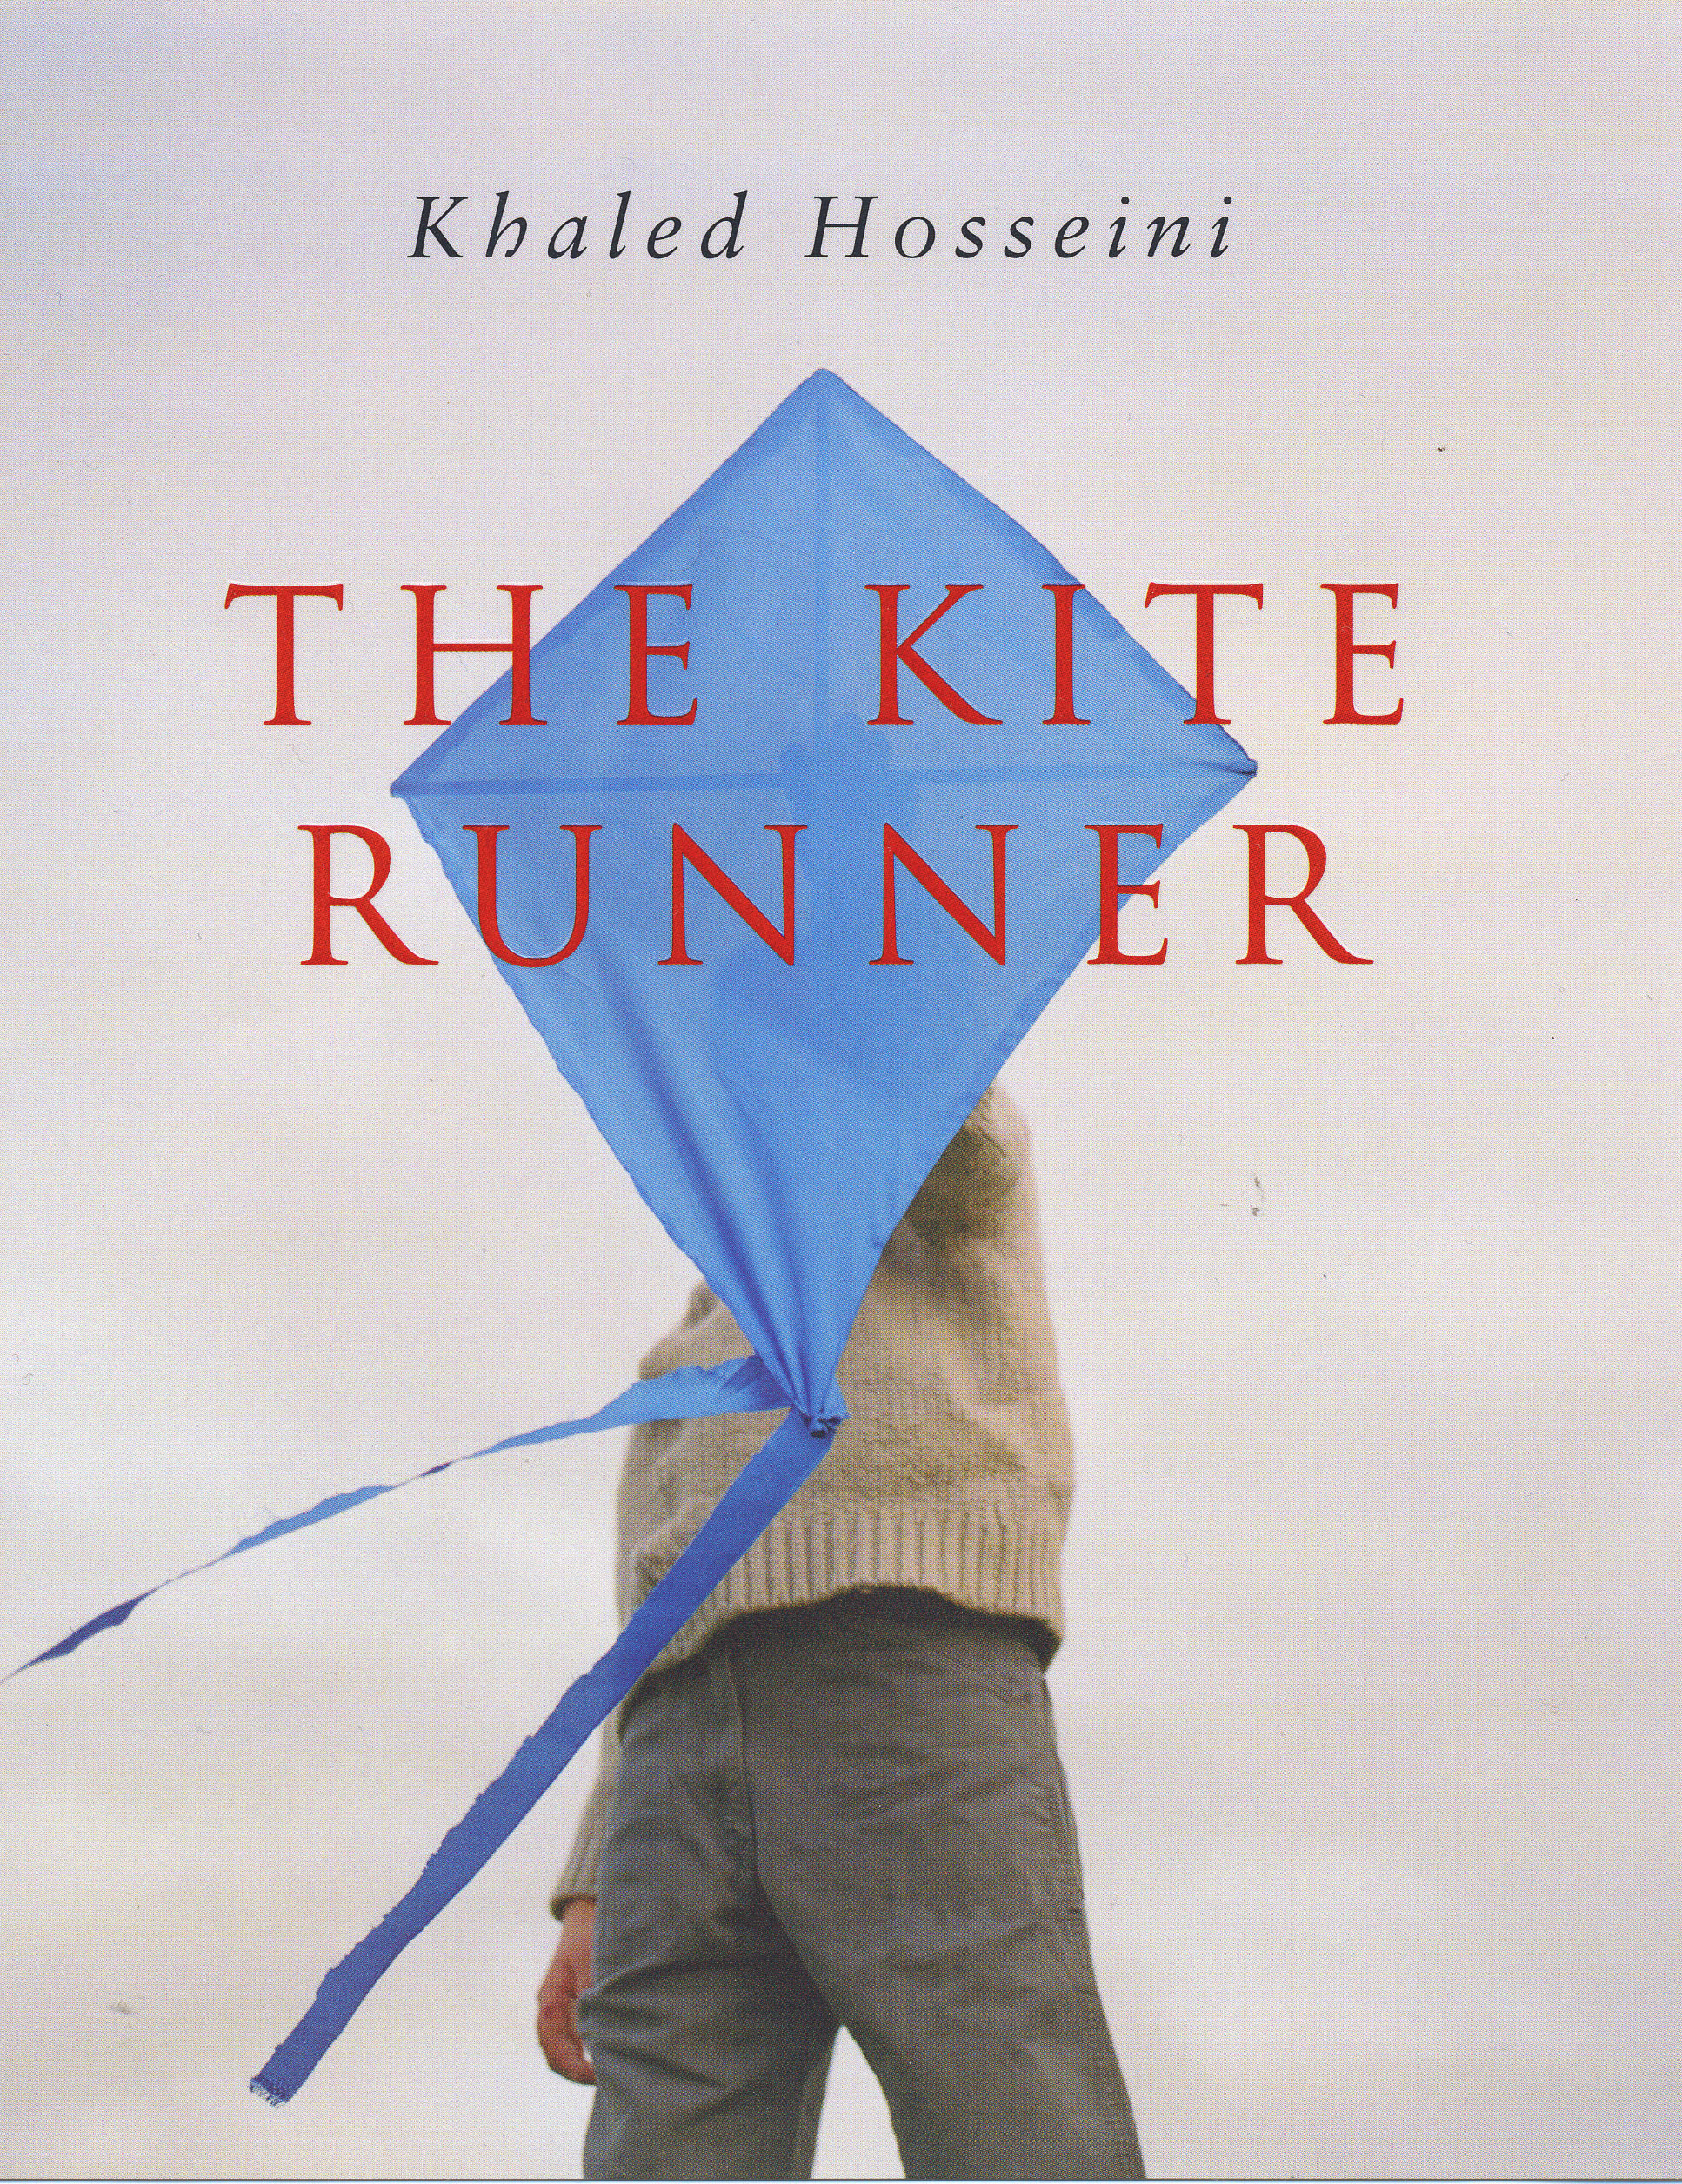 comparison kite runner and east of the kite runner compare and contrast essay essay sample the kite runner is a novel written by khaled hosseini in 2003 taking place in afghanistan, the book is about a wealthy pashtun boy growing into a man, and facing life's trials, along with the destruction of his homeland.